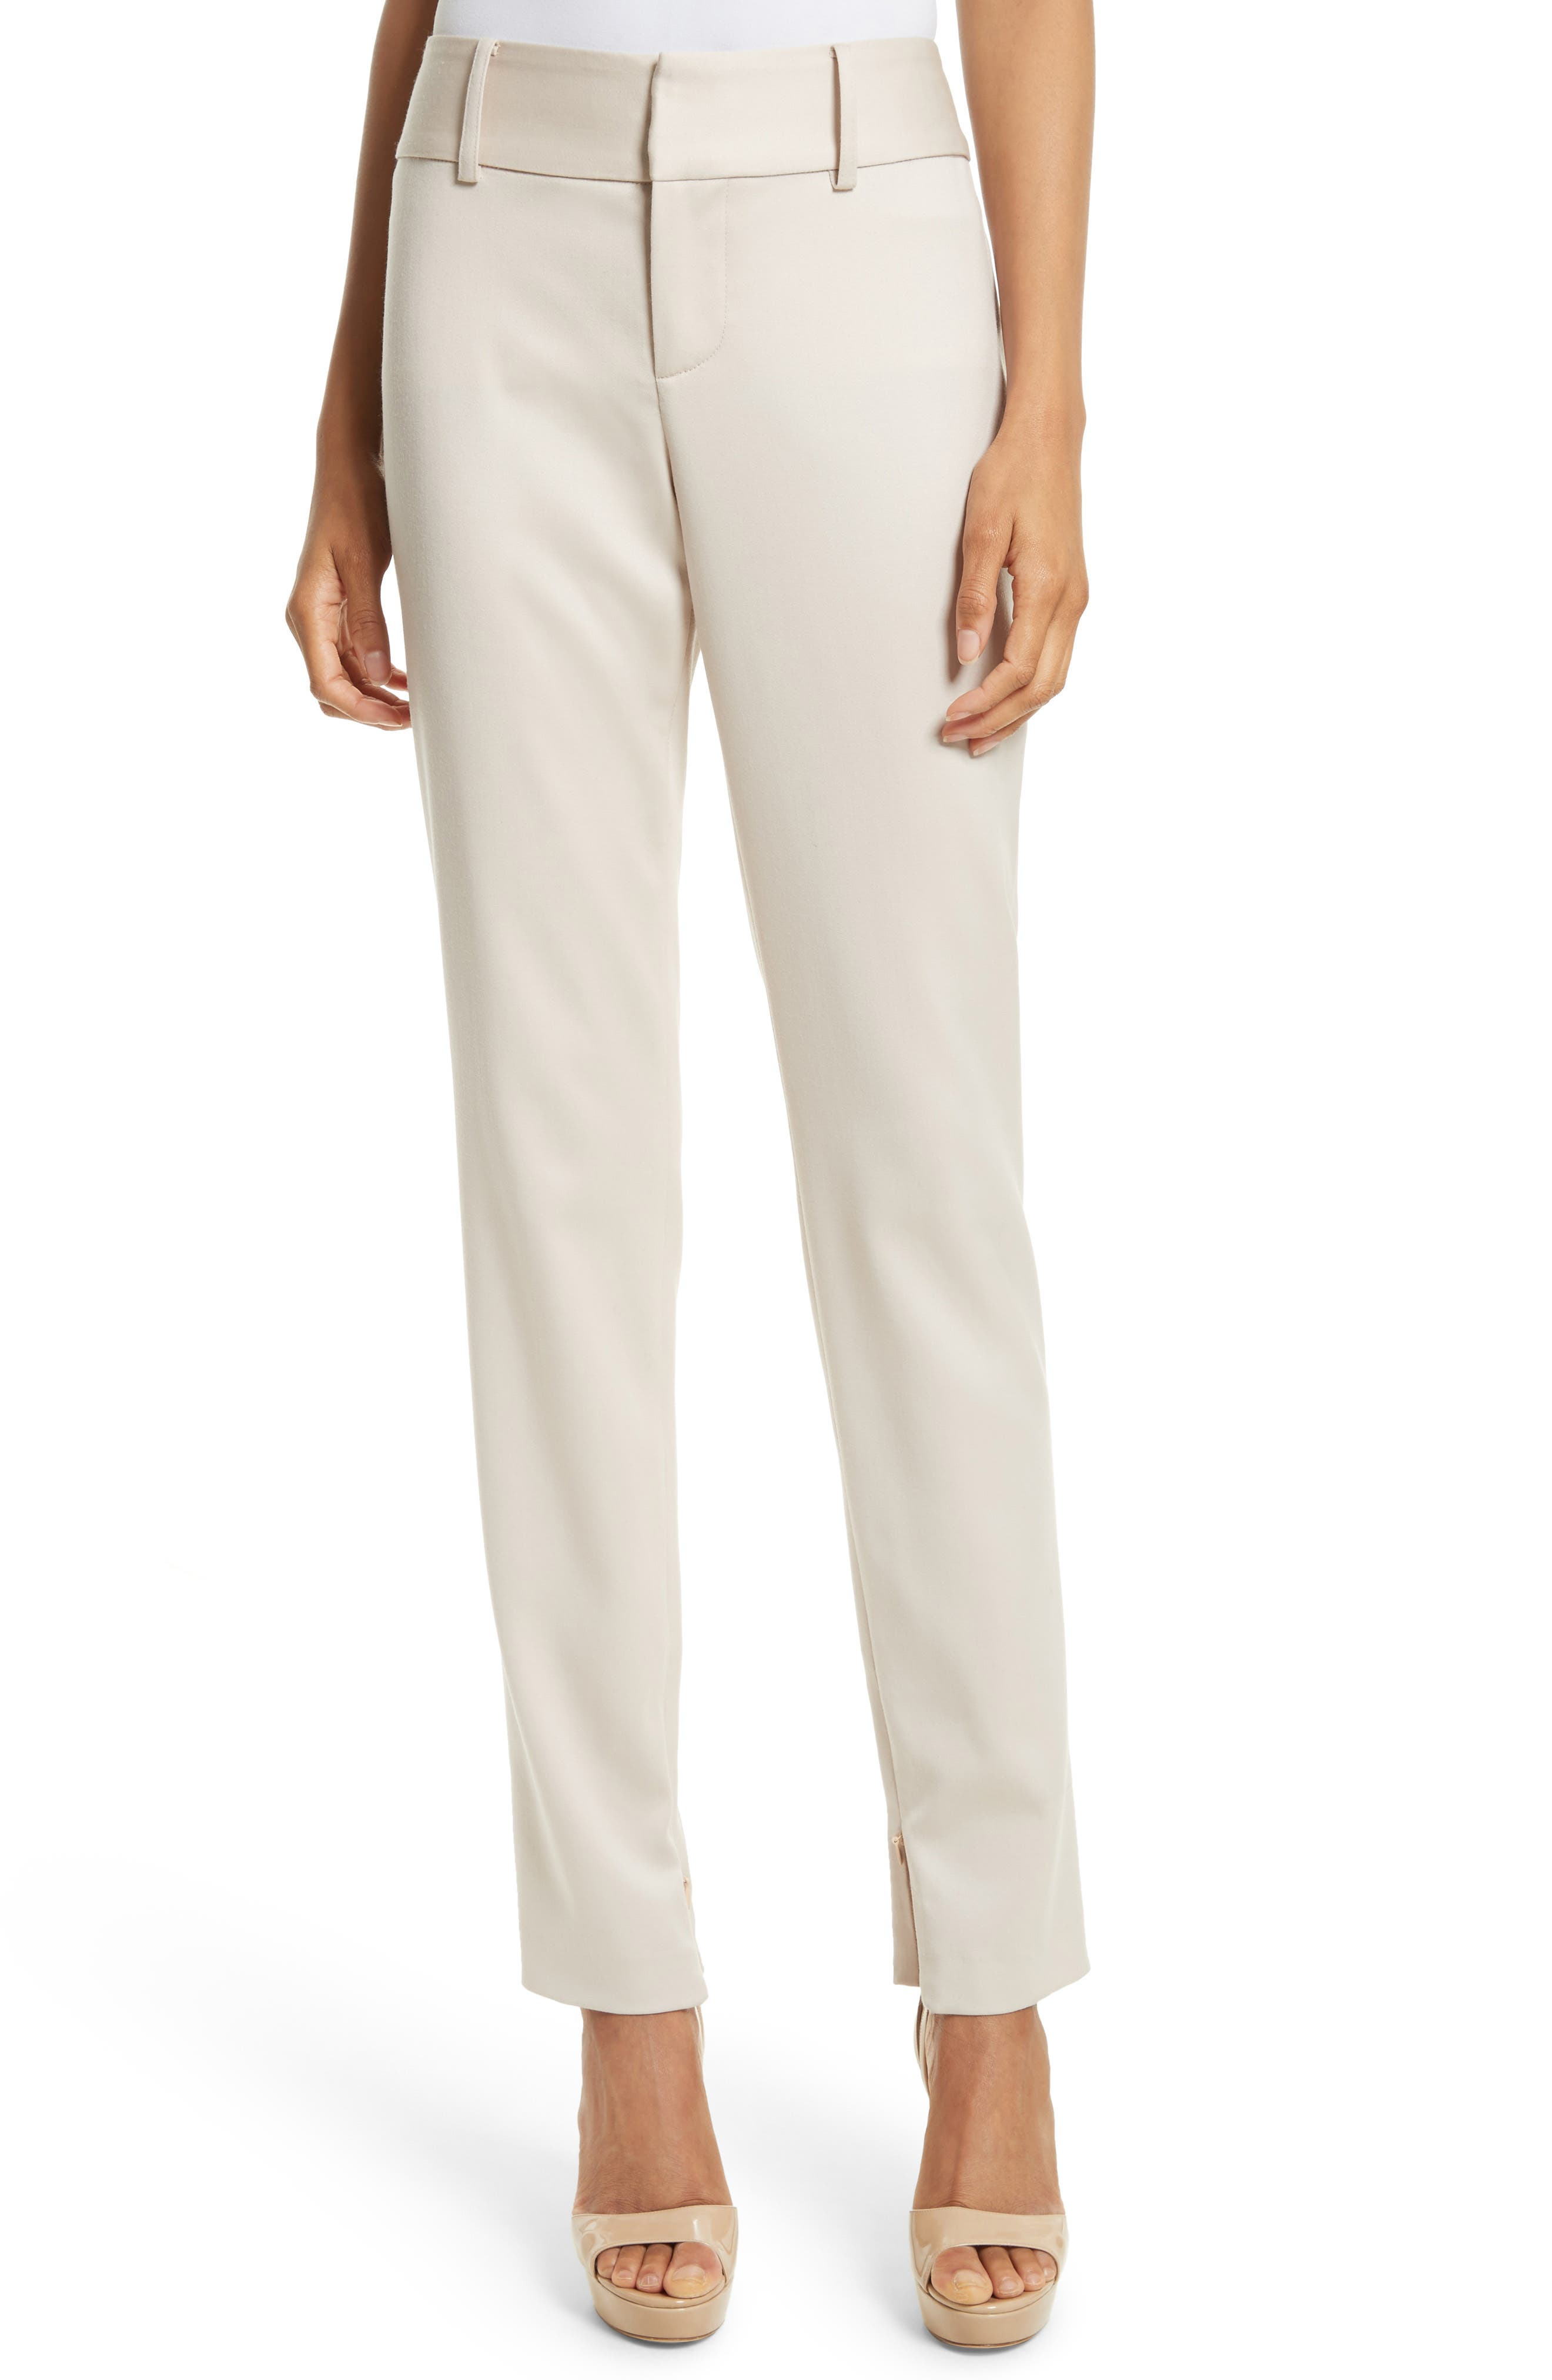 Alice + Olivia Cadence Ankle Zip Wool Trousers